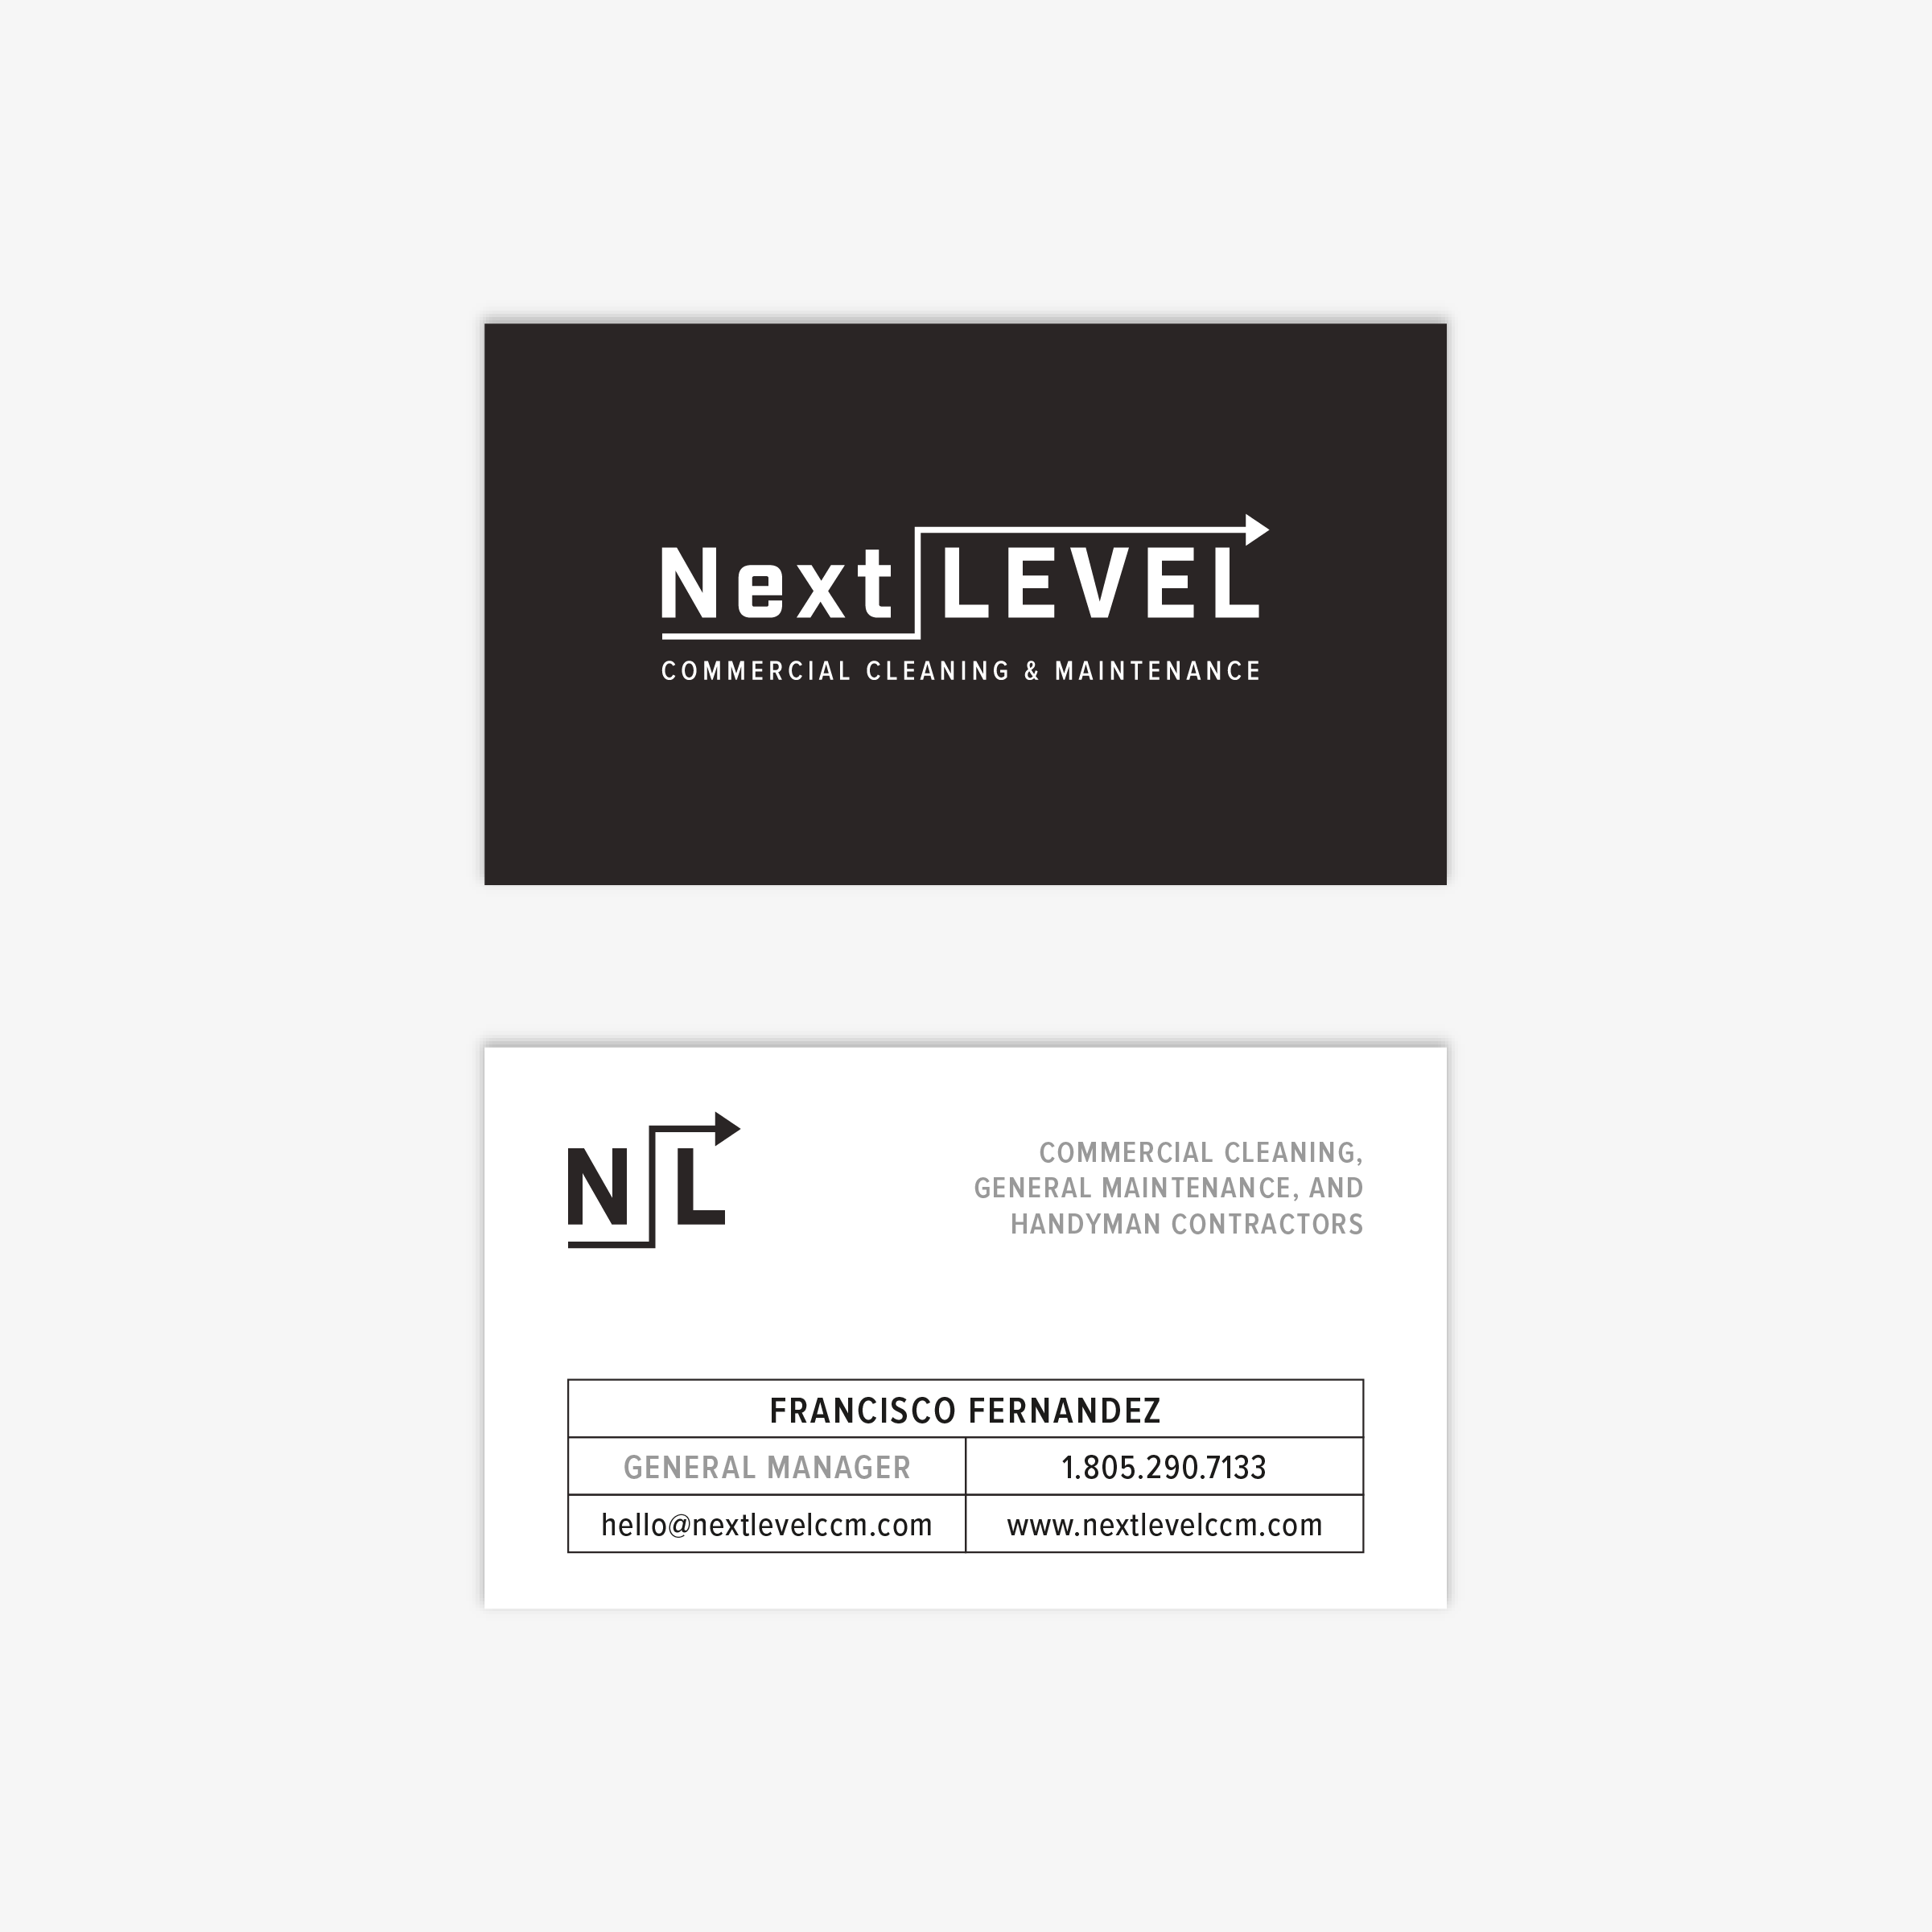 Next_Level_businesscard_v01-05.png